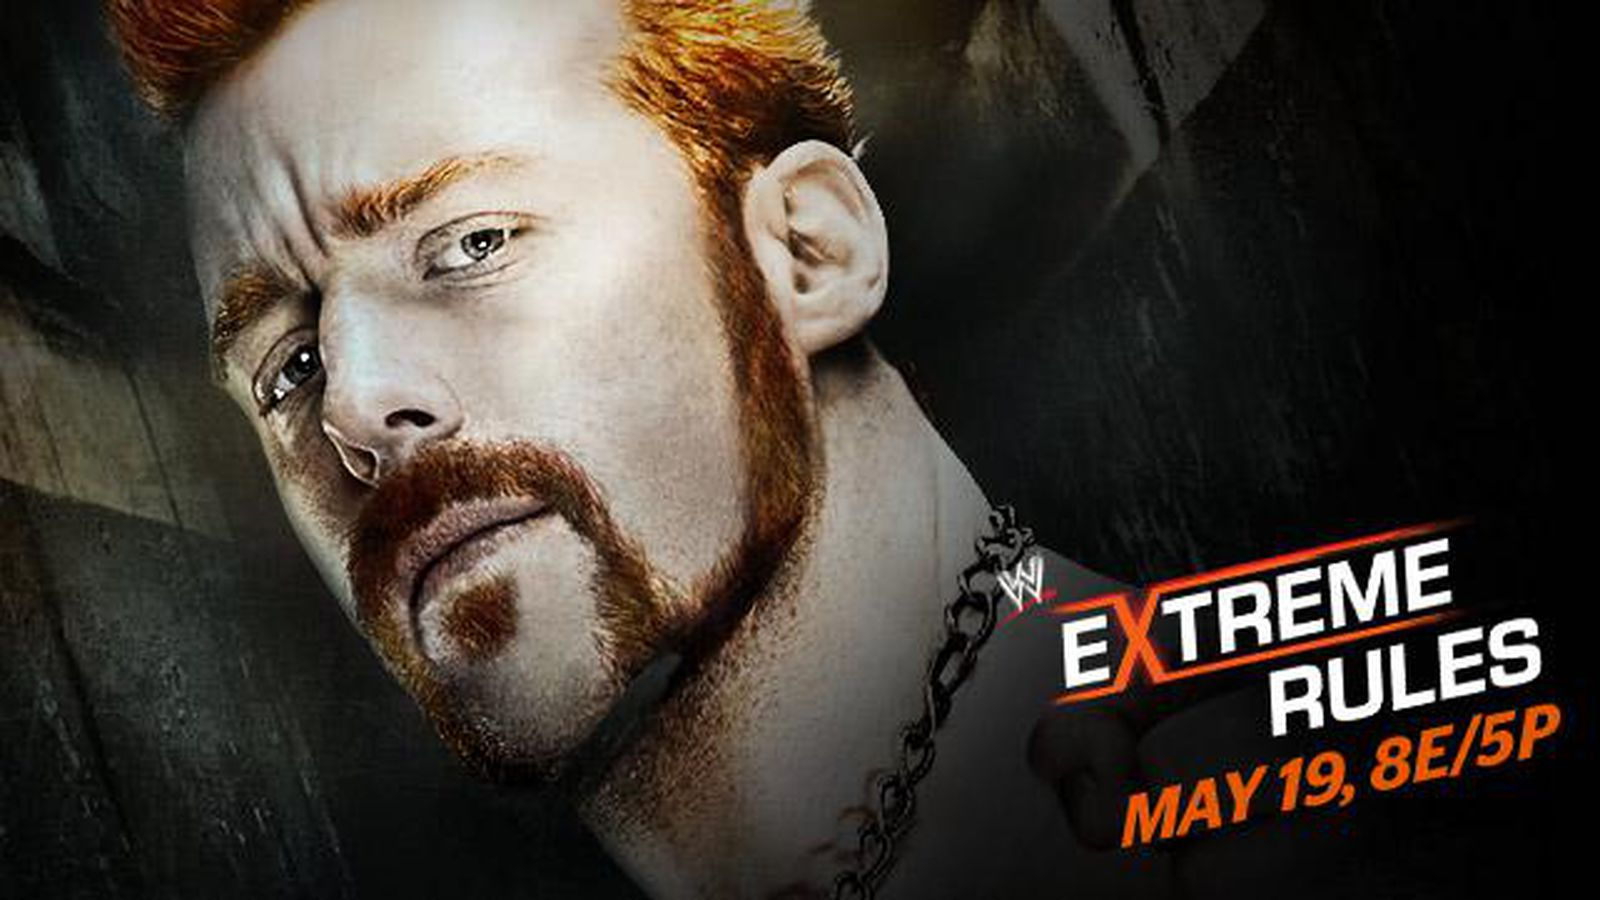 Wwe extreme rules results and live match coverage tonight may 19 from st louis cageside seats